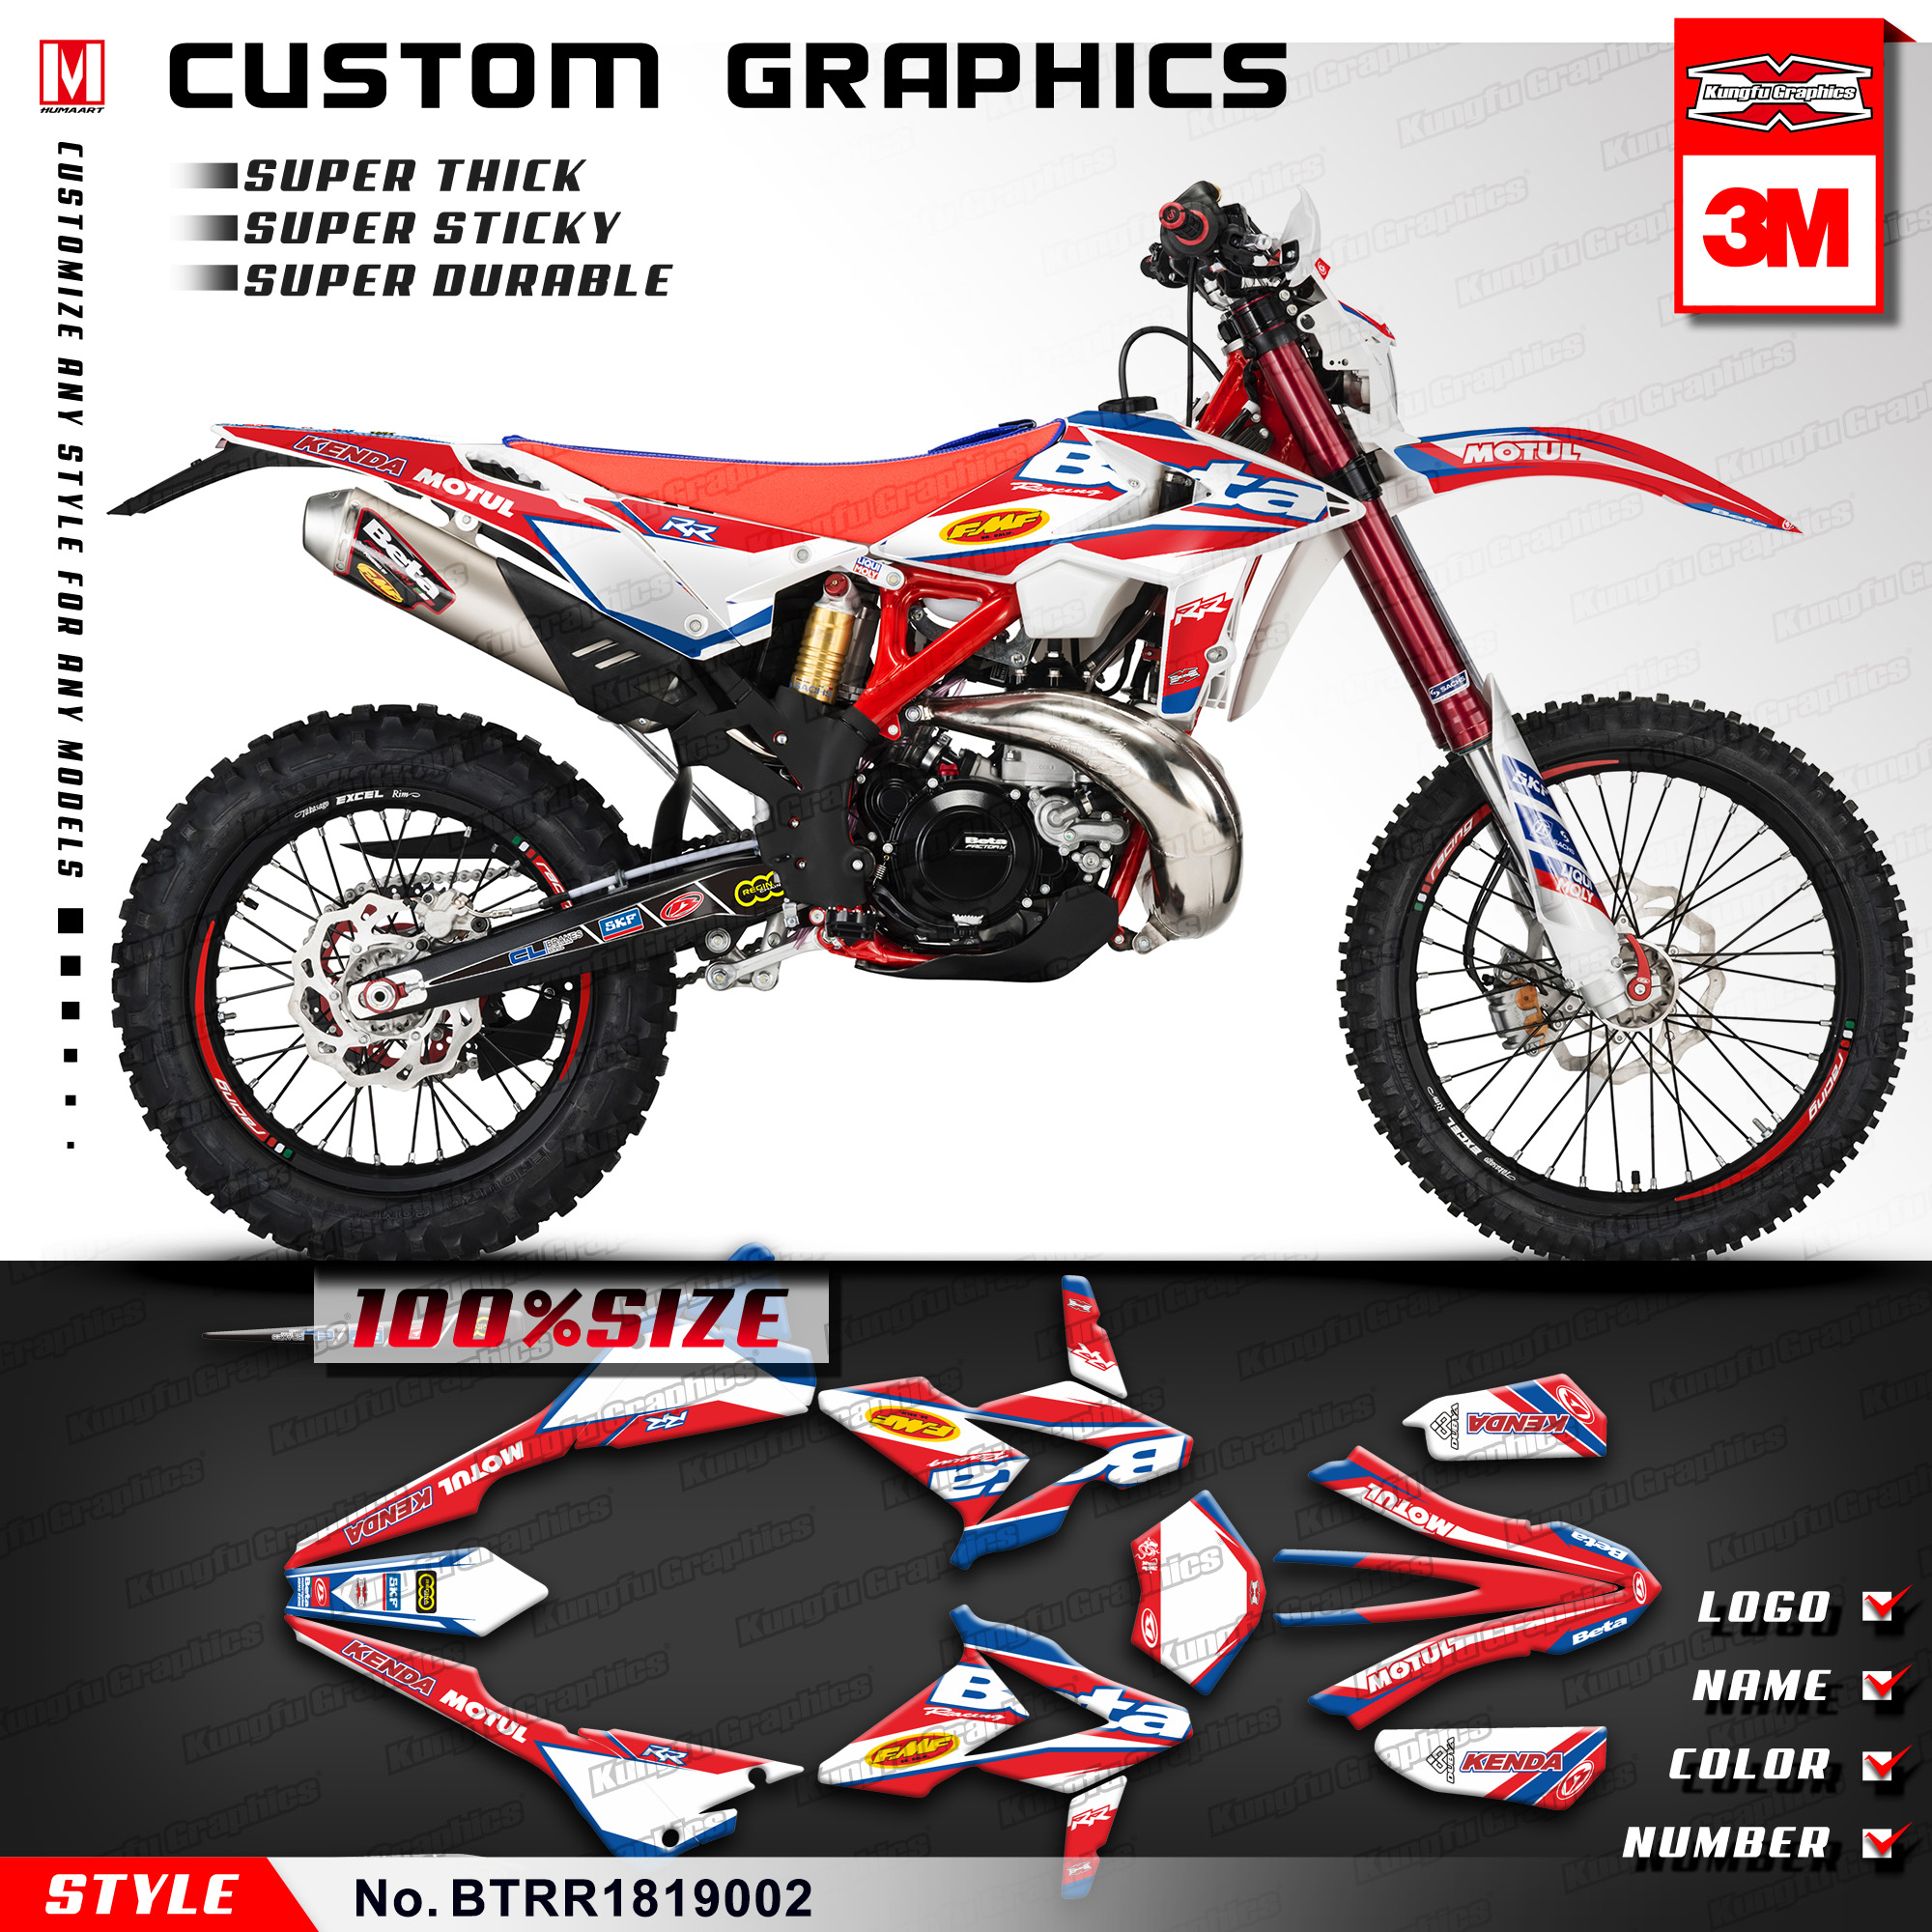 KUNGFU GRAPHICS Motocross Custom Stickers Kit Vinyl Wrap for Beta 250 300 350 390 430 480 RR 2018 2019 (Style no. BTRR1819002)-in Decals & Stickers from Automobiles & Motorcycles    1